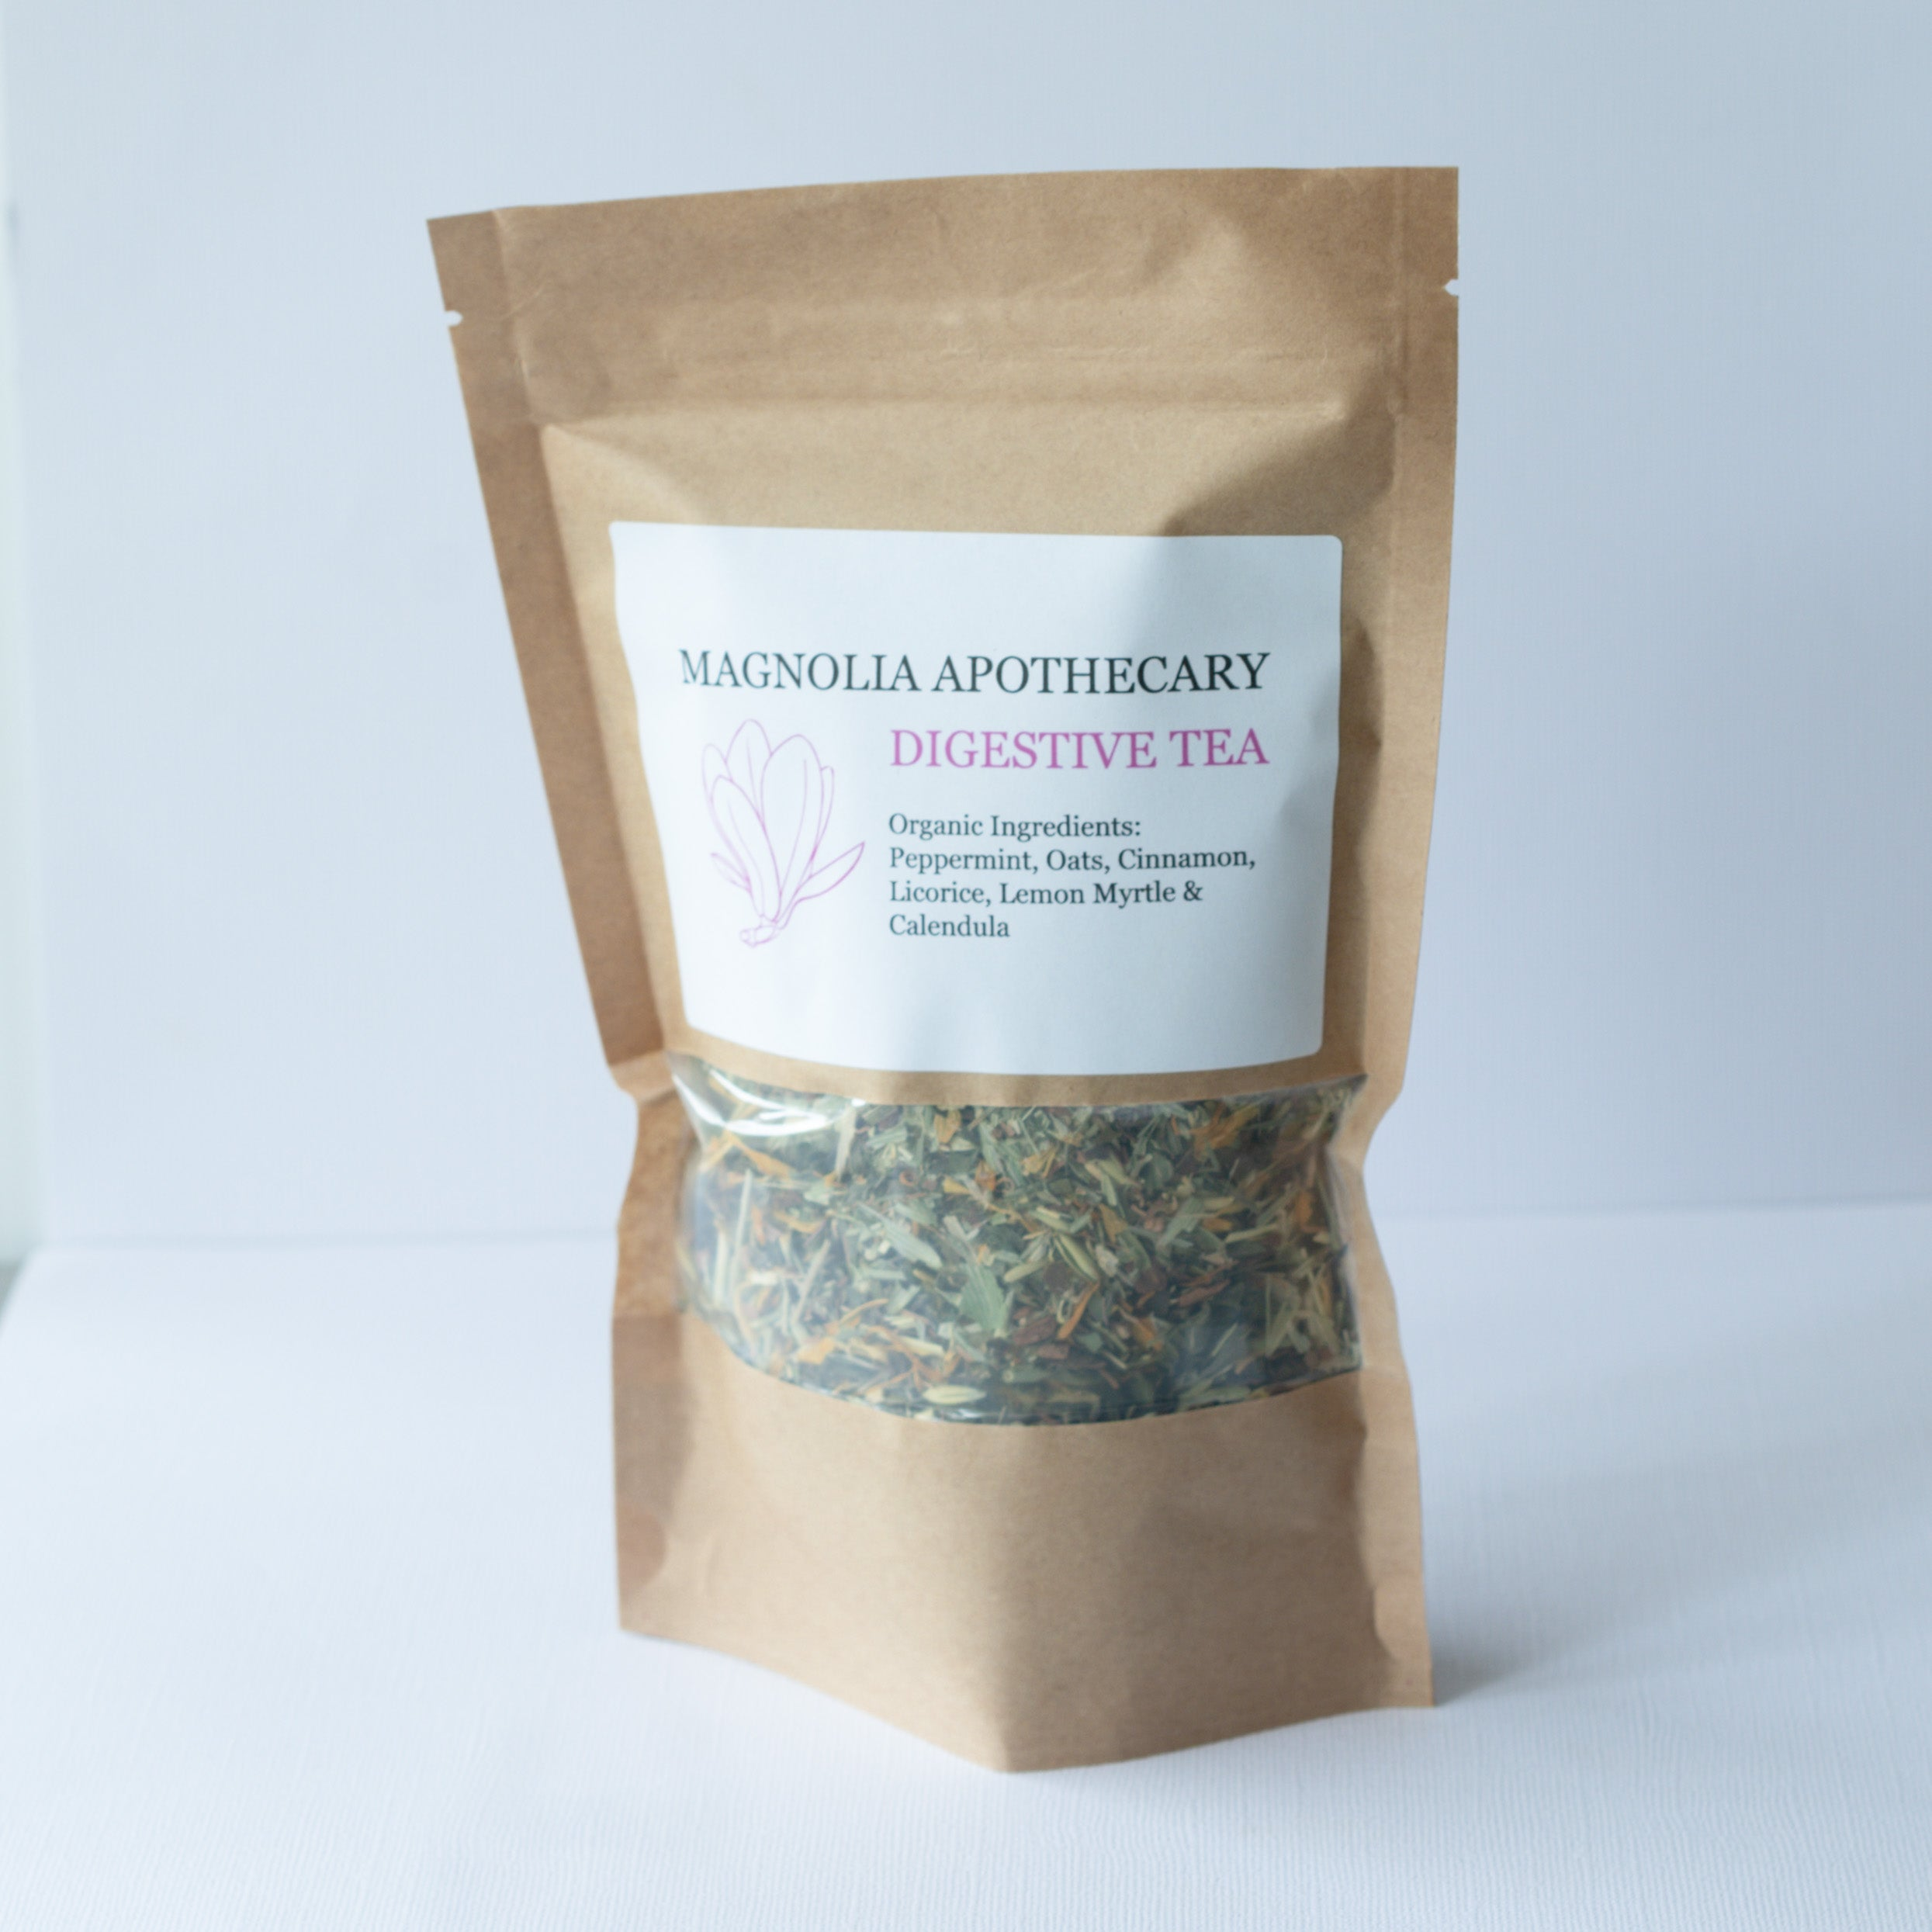 Magnolia Apothecary Digestive Tea - The Conscious Spender